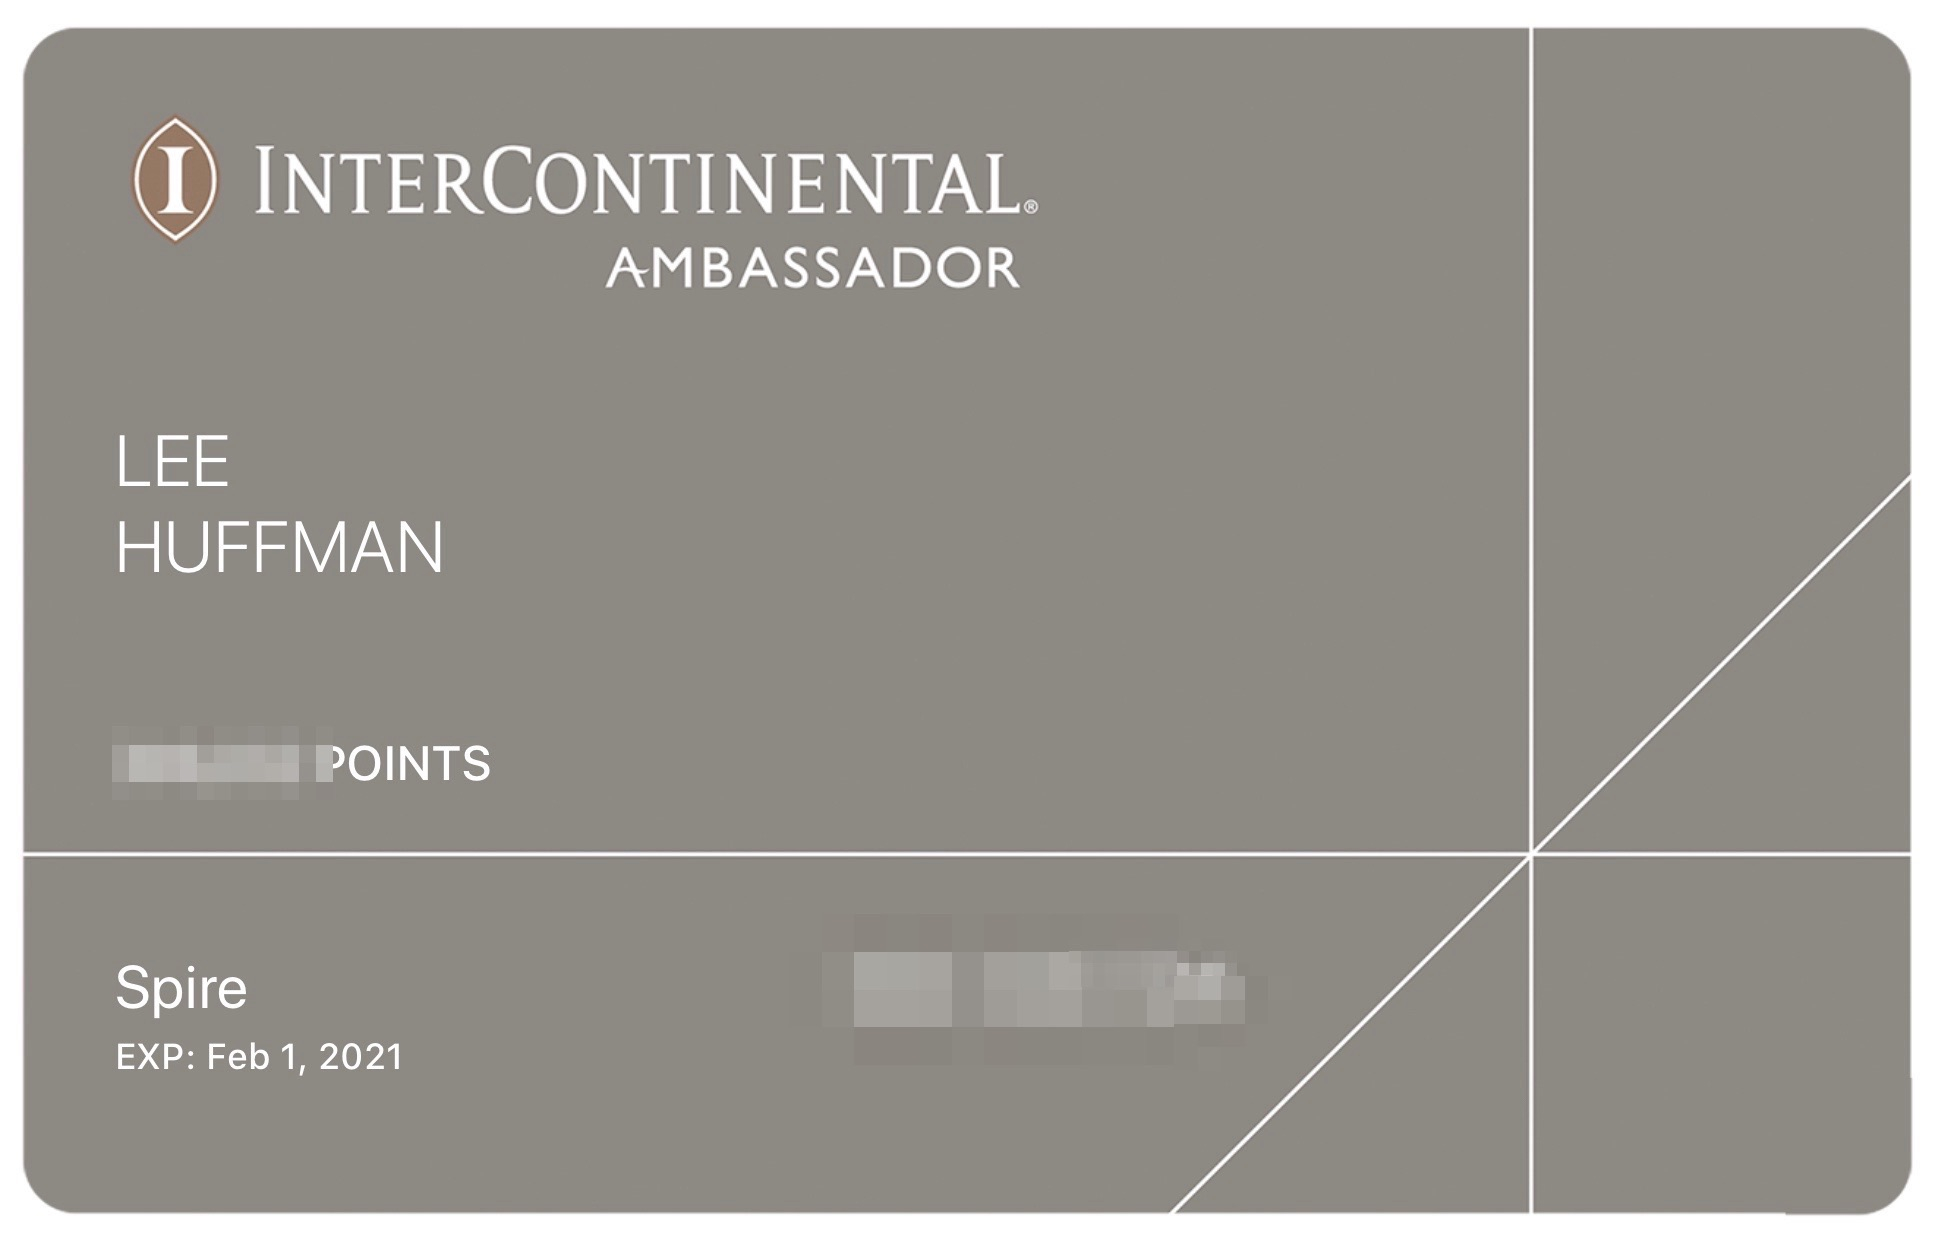 IHG Ambassador membership card expires 2021